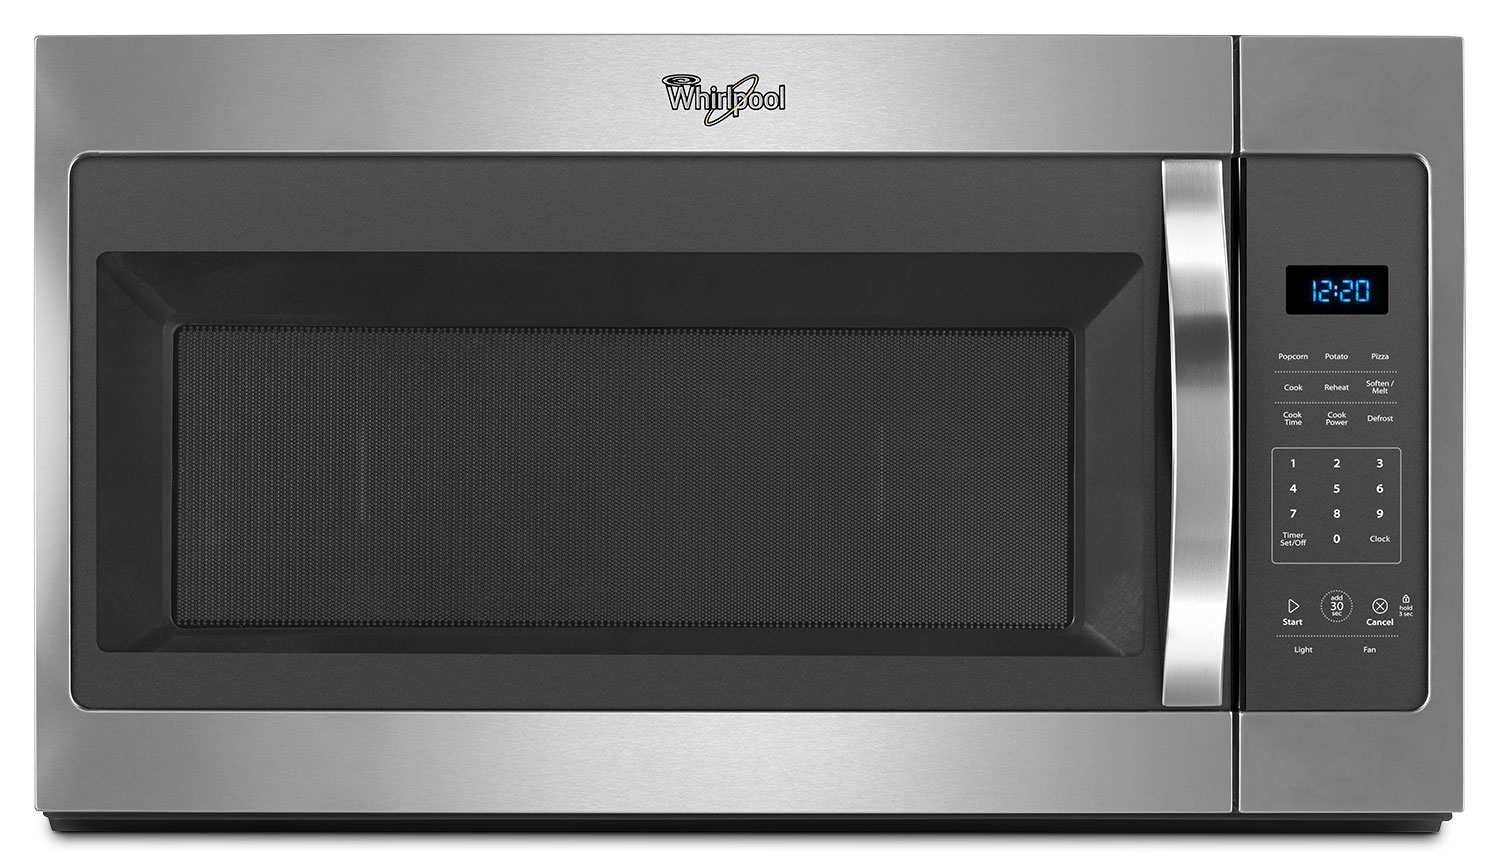 Whirlpool Stainless Steel Over-the-Range Microwave (1.7 Cu. Ft.) - YWMH31017FS